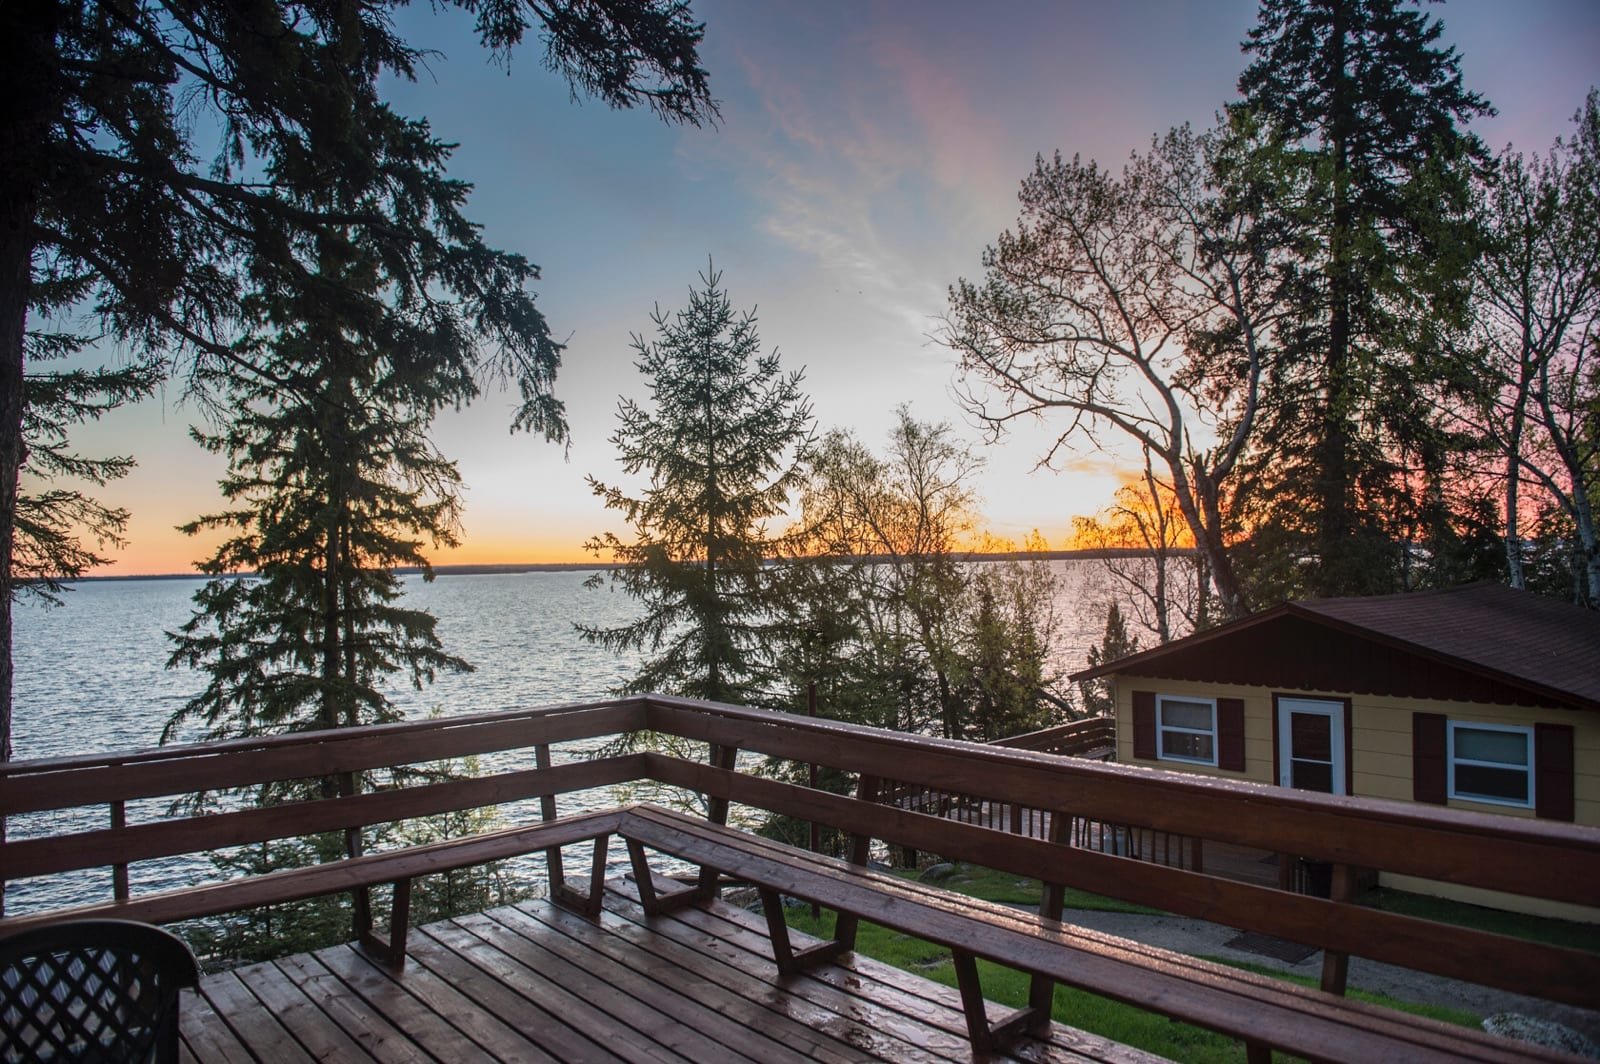 Wooden deck overlooking lake at sunset.